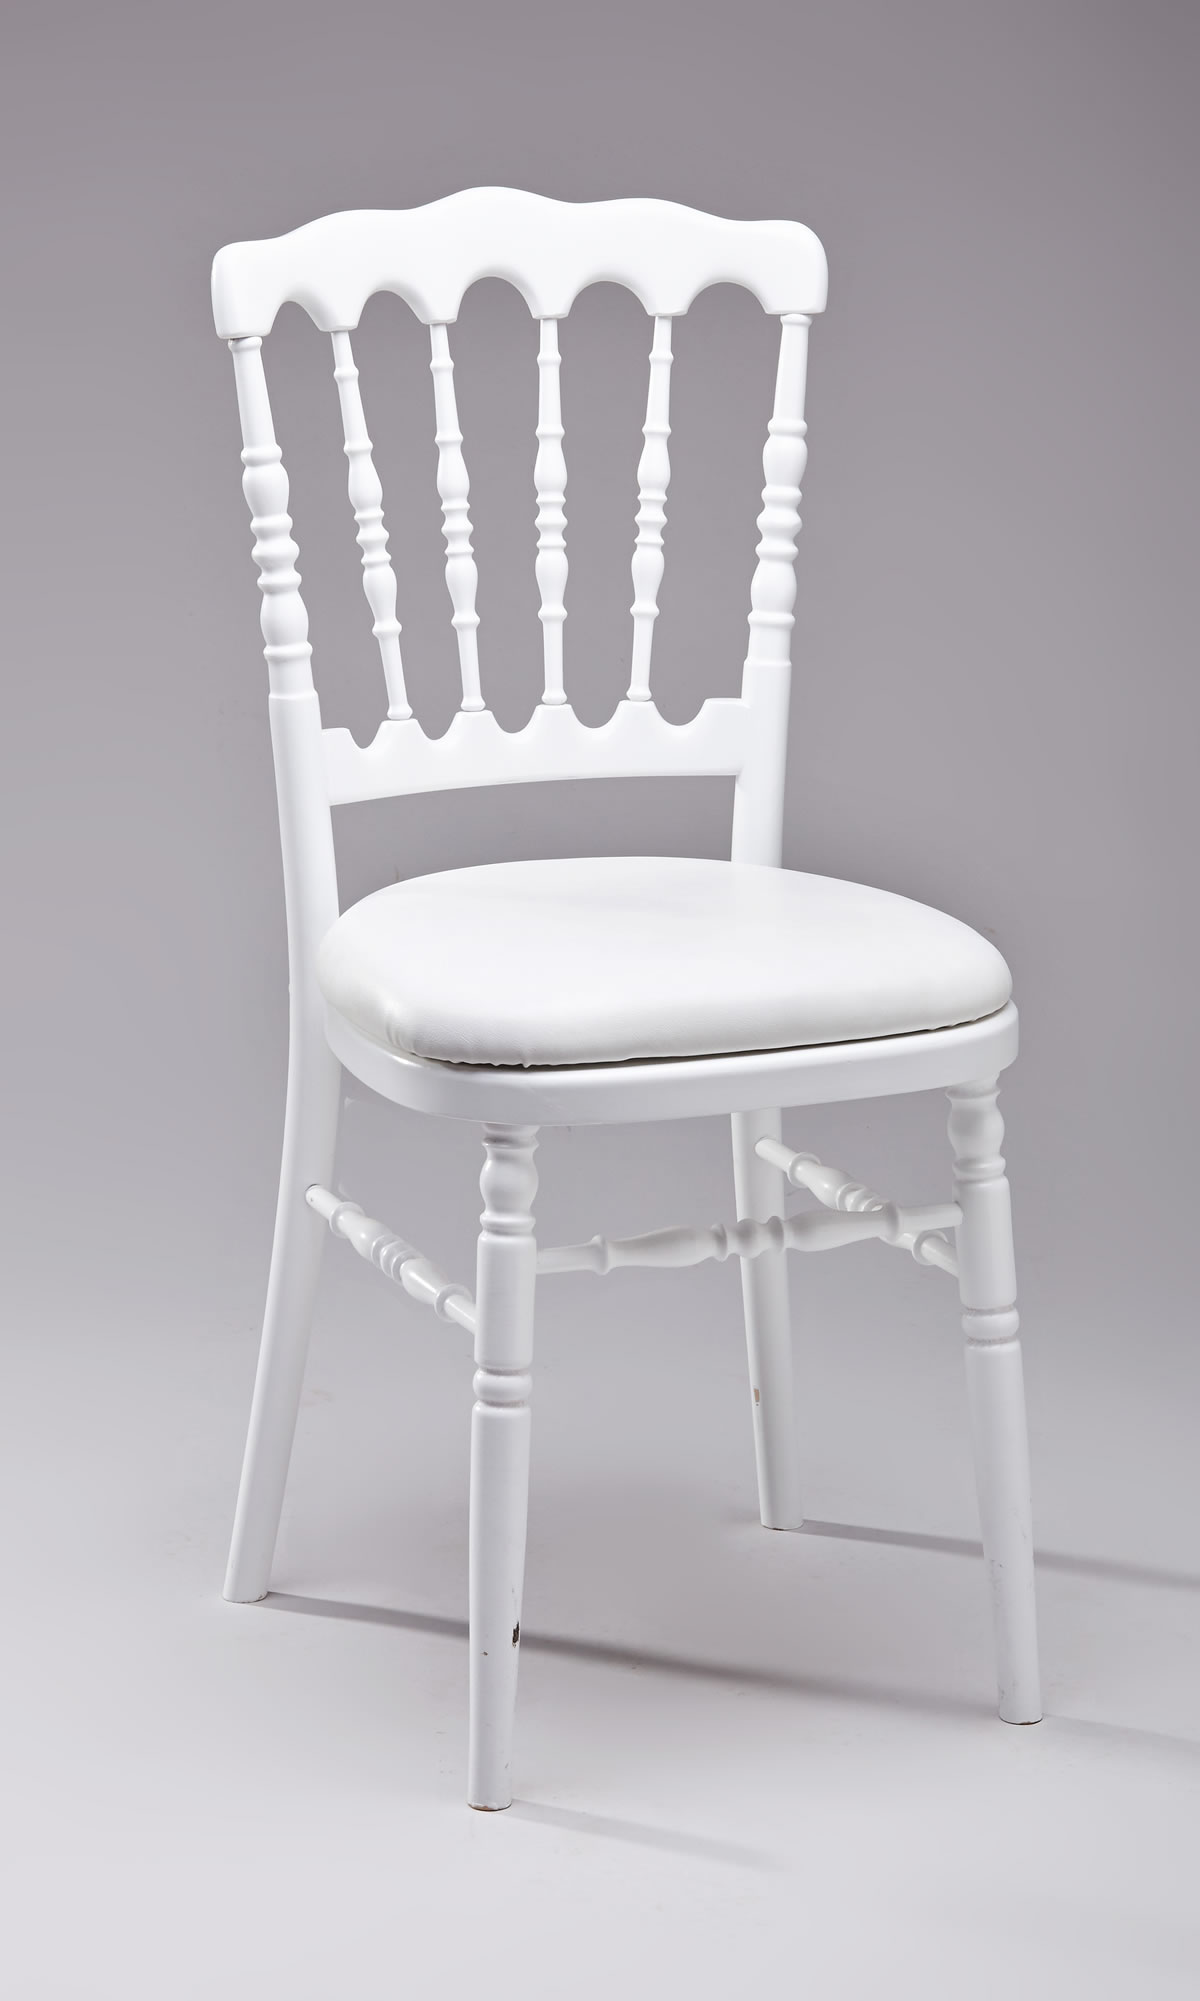 Dimension Tabouret De Bar Location Chaise Napoléon Couleur Blanche Empilable (devis